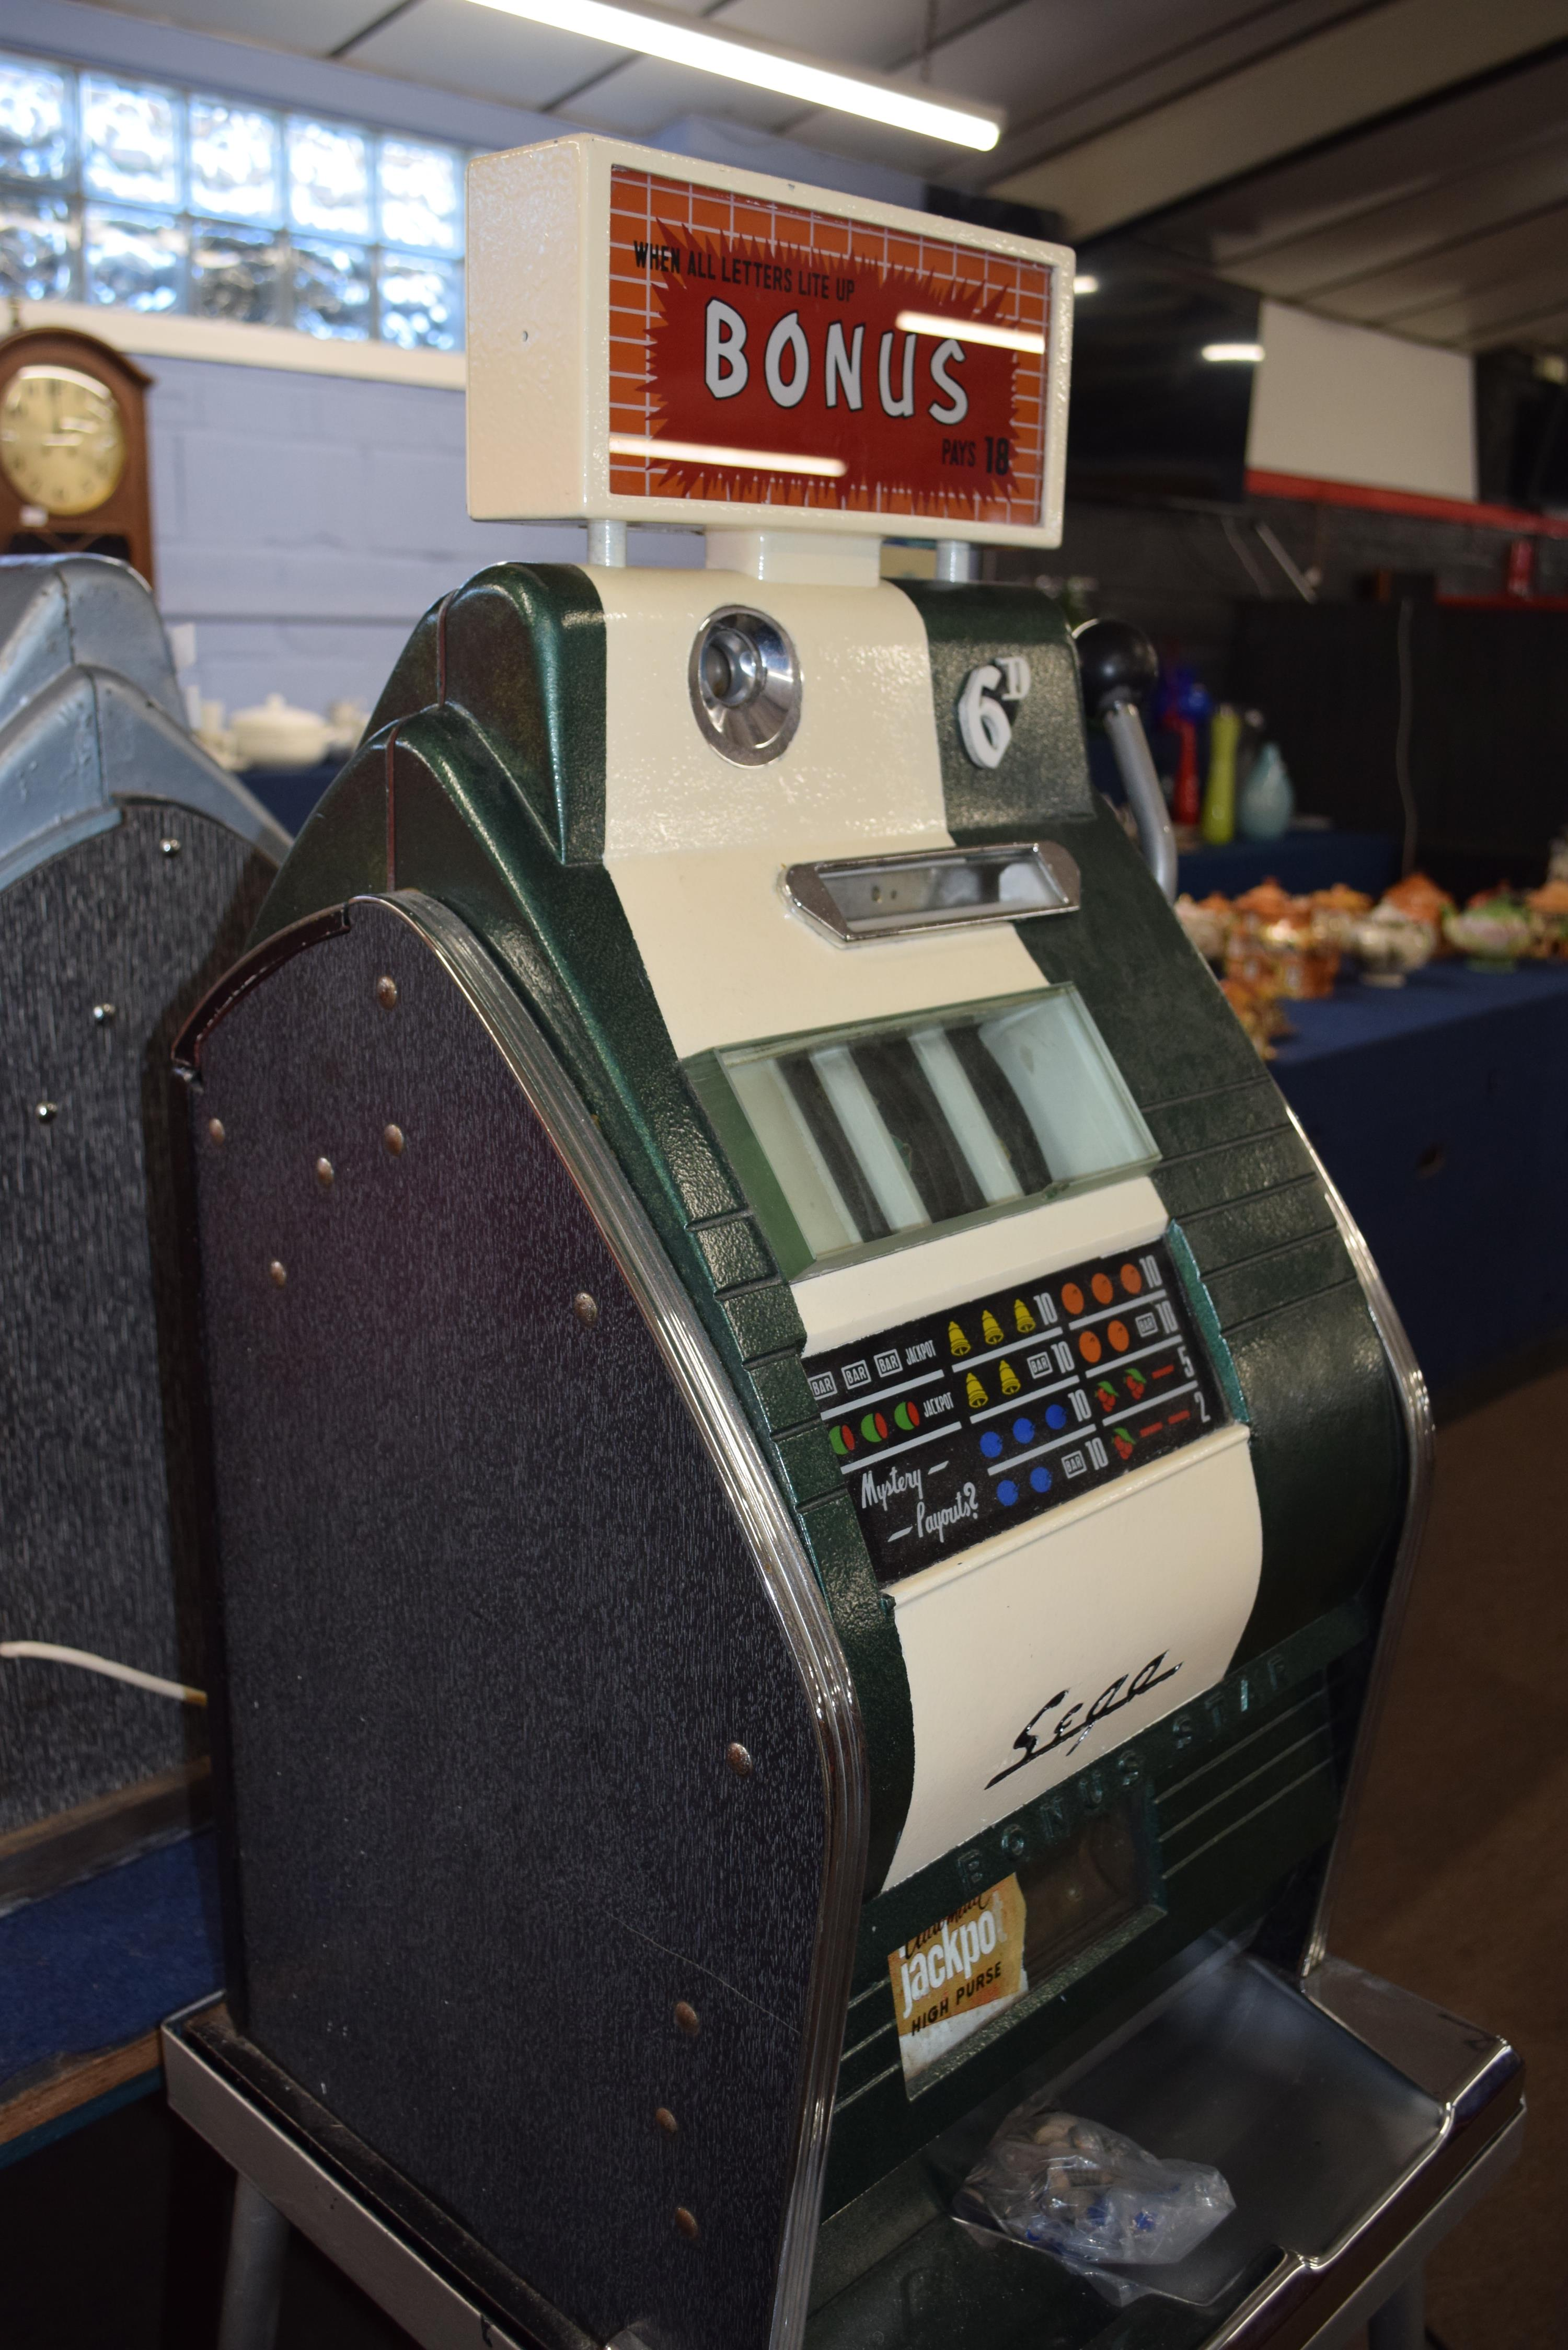 Bonus Star by Sega one-armed bandit fruit machine with electric light-up, approx 80cm high, together - Image 7 of 11